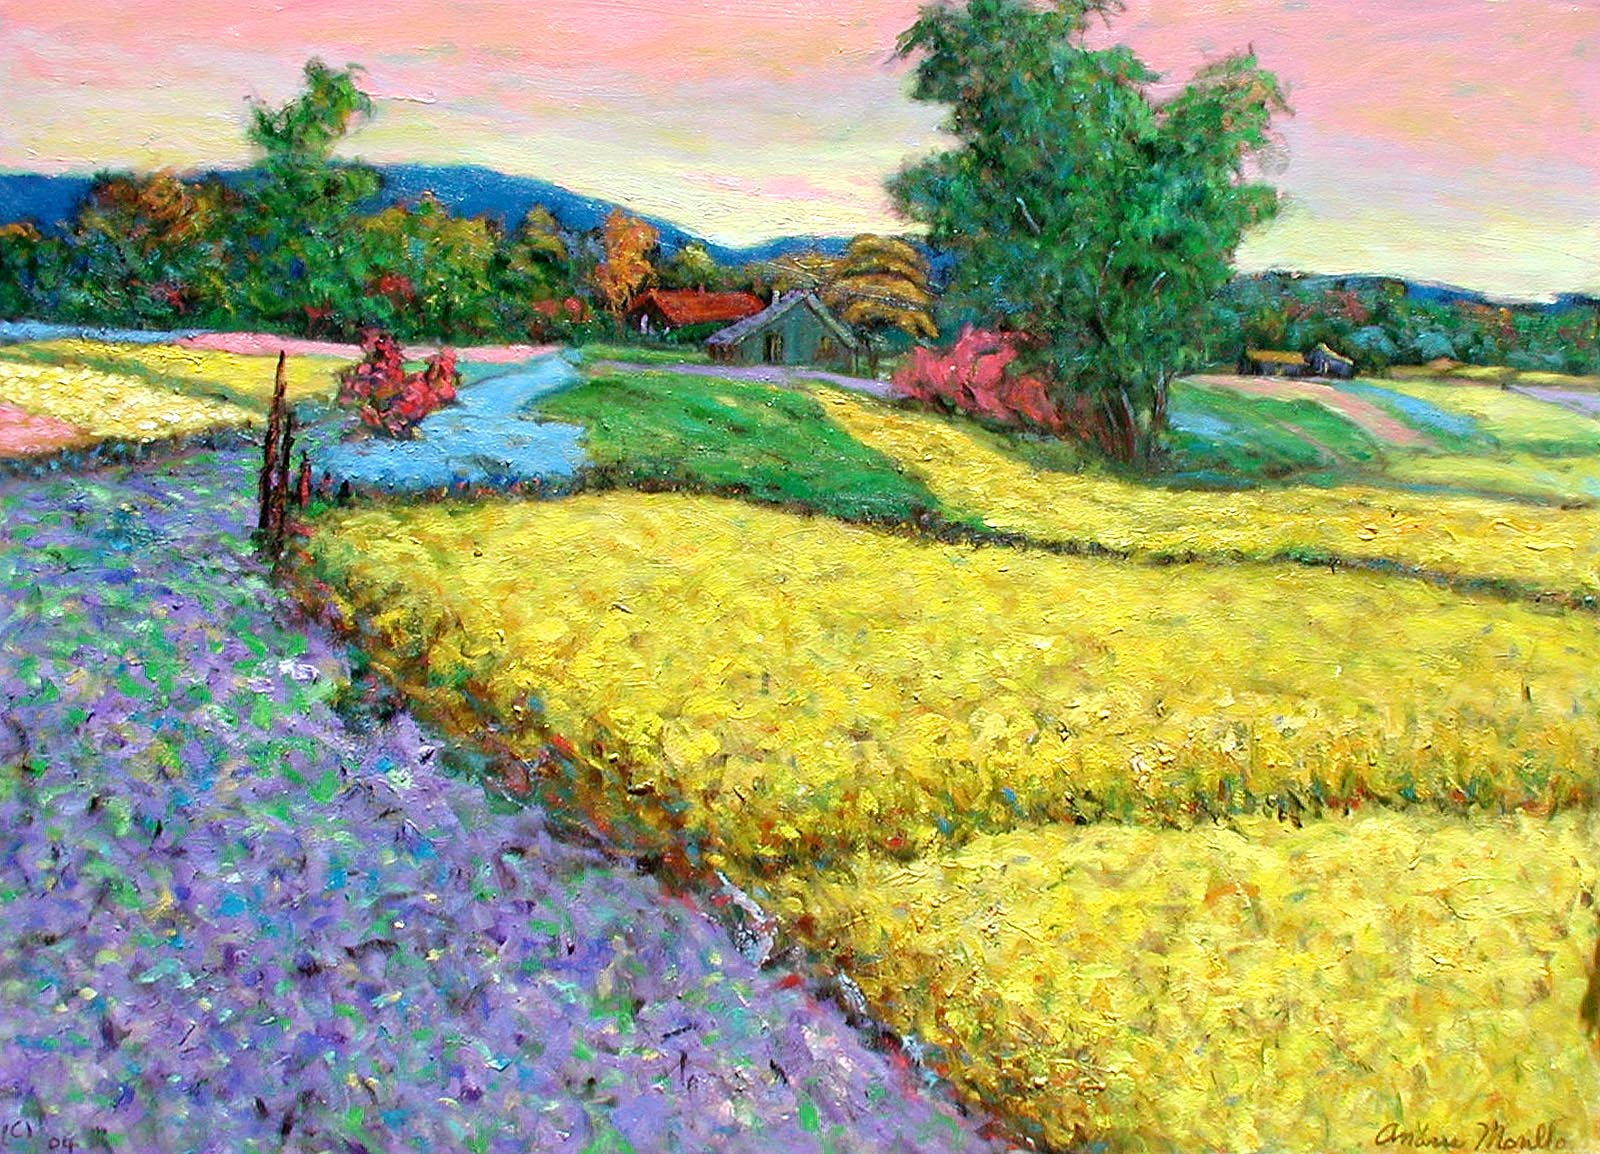 Kent Farmland by  Andres  Morillo - Masterpiece Online